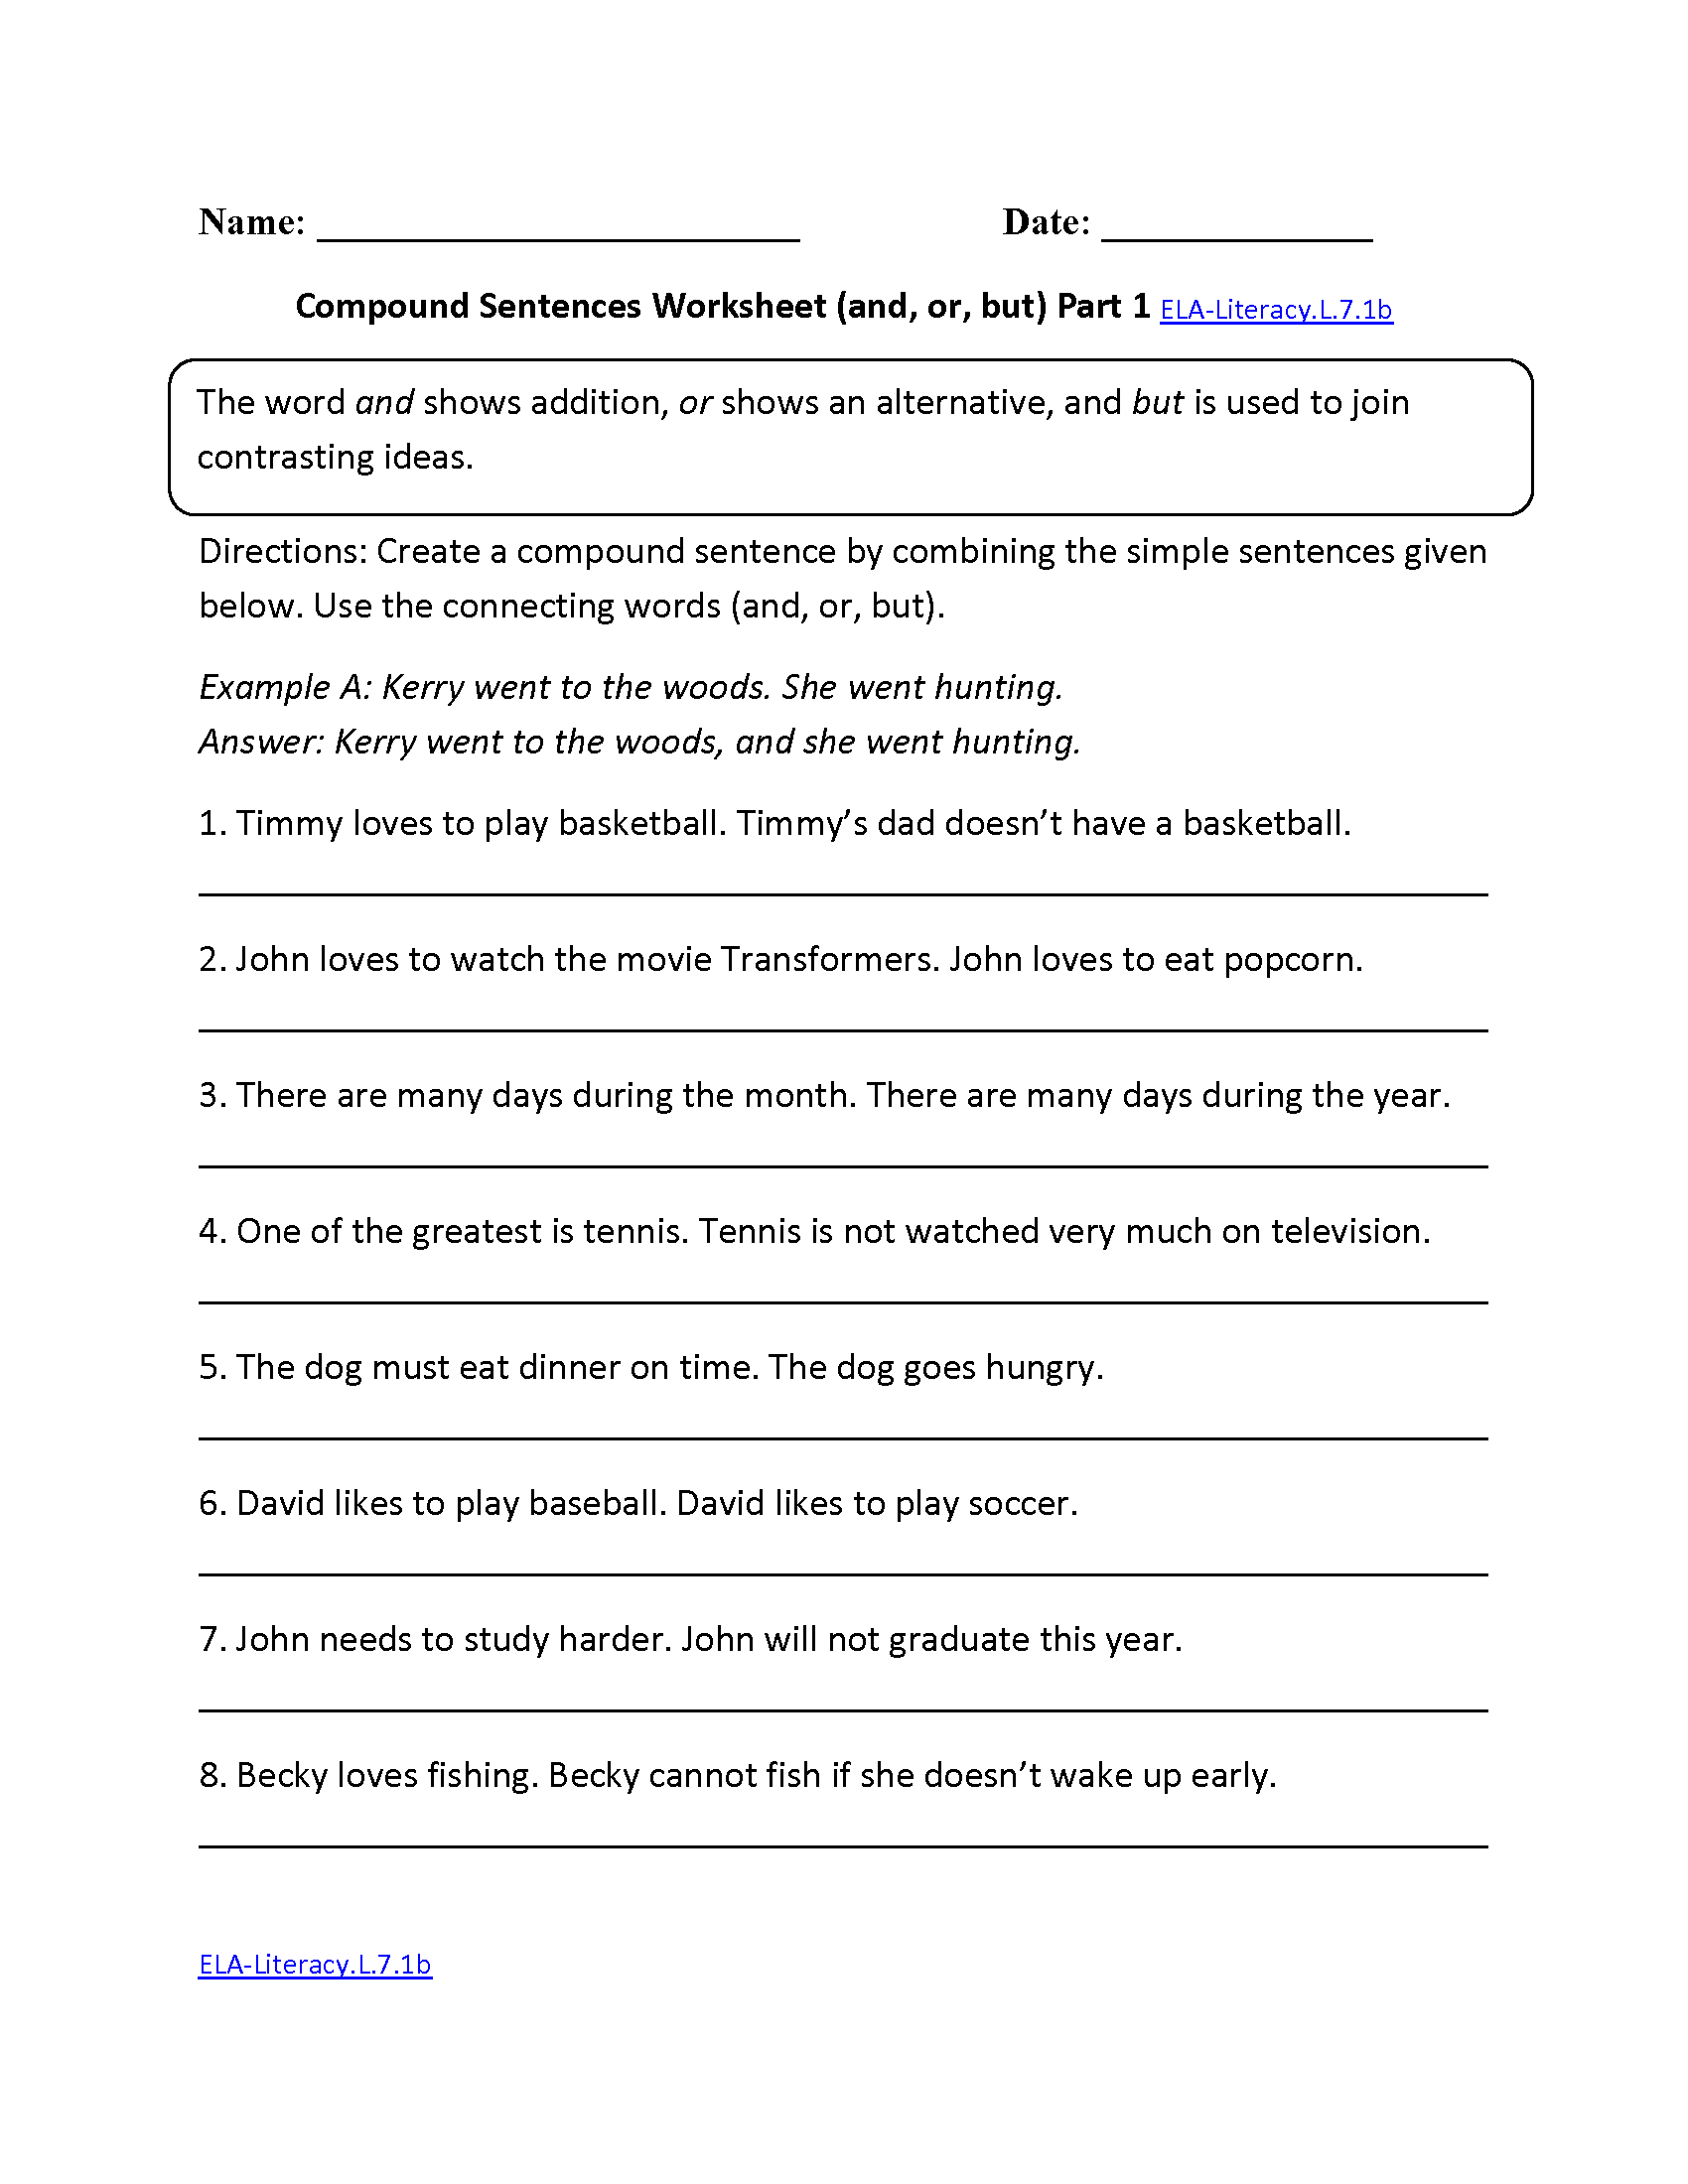 Worksheets 7th Grade Worksheet 7th grade common core language worksheets compound sentences worksheet ela literacy l 7 1b worksheet